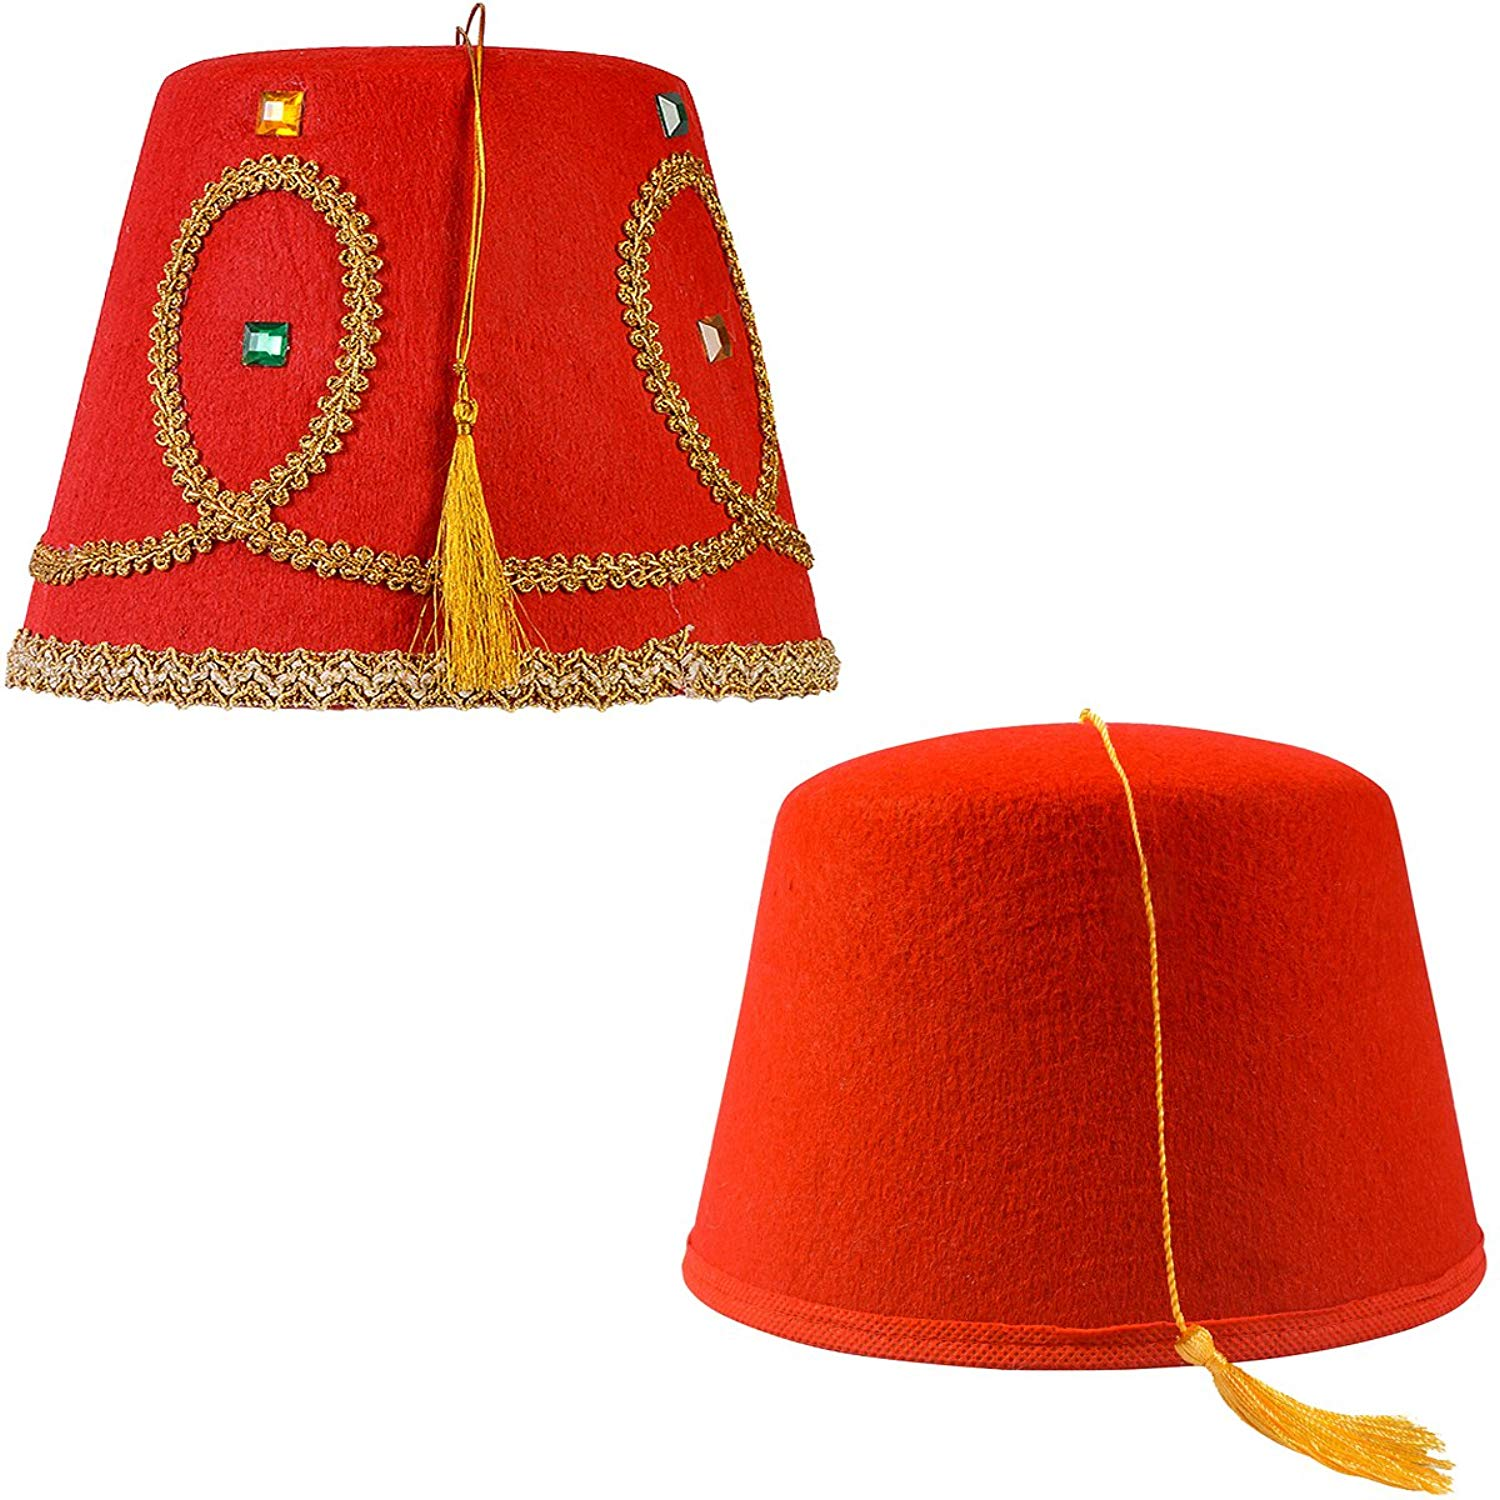 Get Quotations · Tigerdoe Fez Hat – 2 Pack - Red Fez Hat with Gold Tassel -  Turkish Hat 6977aef70aa9